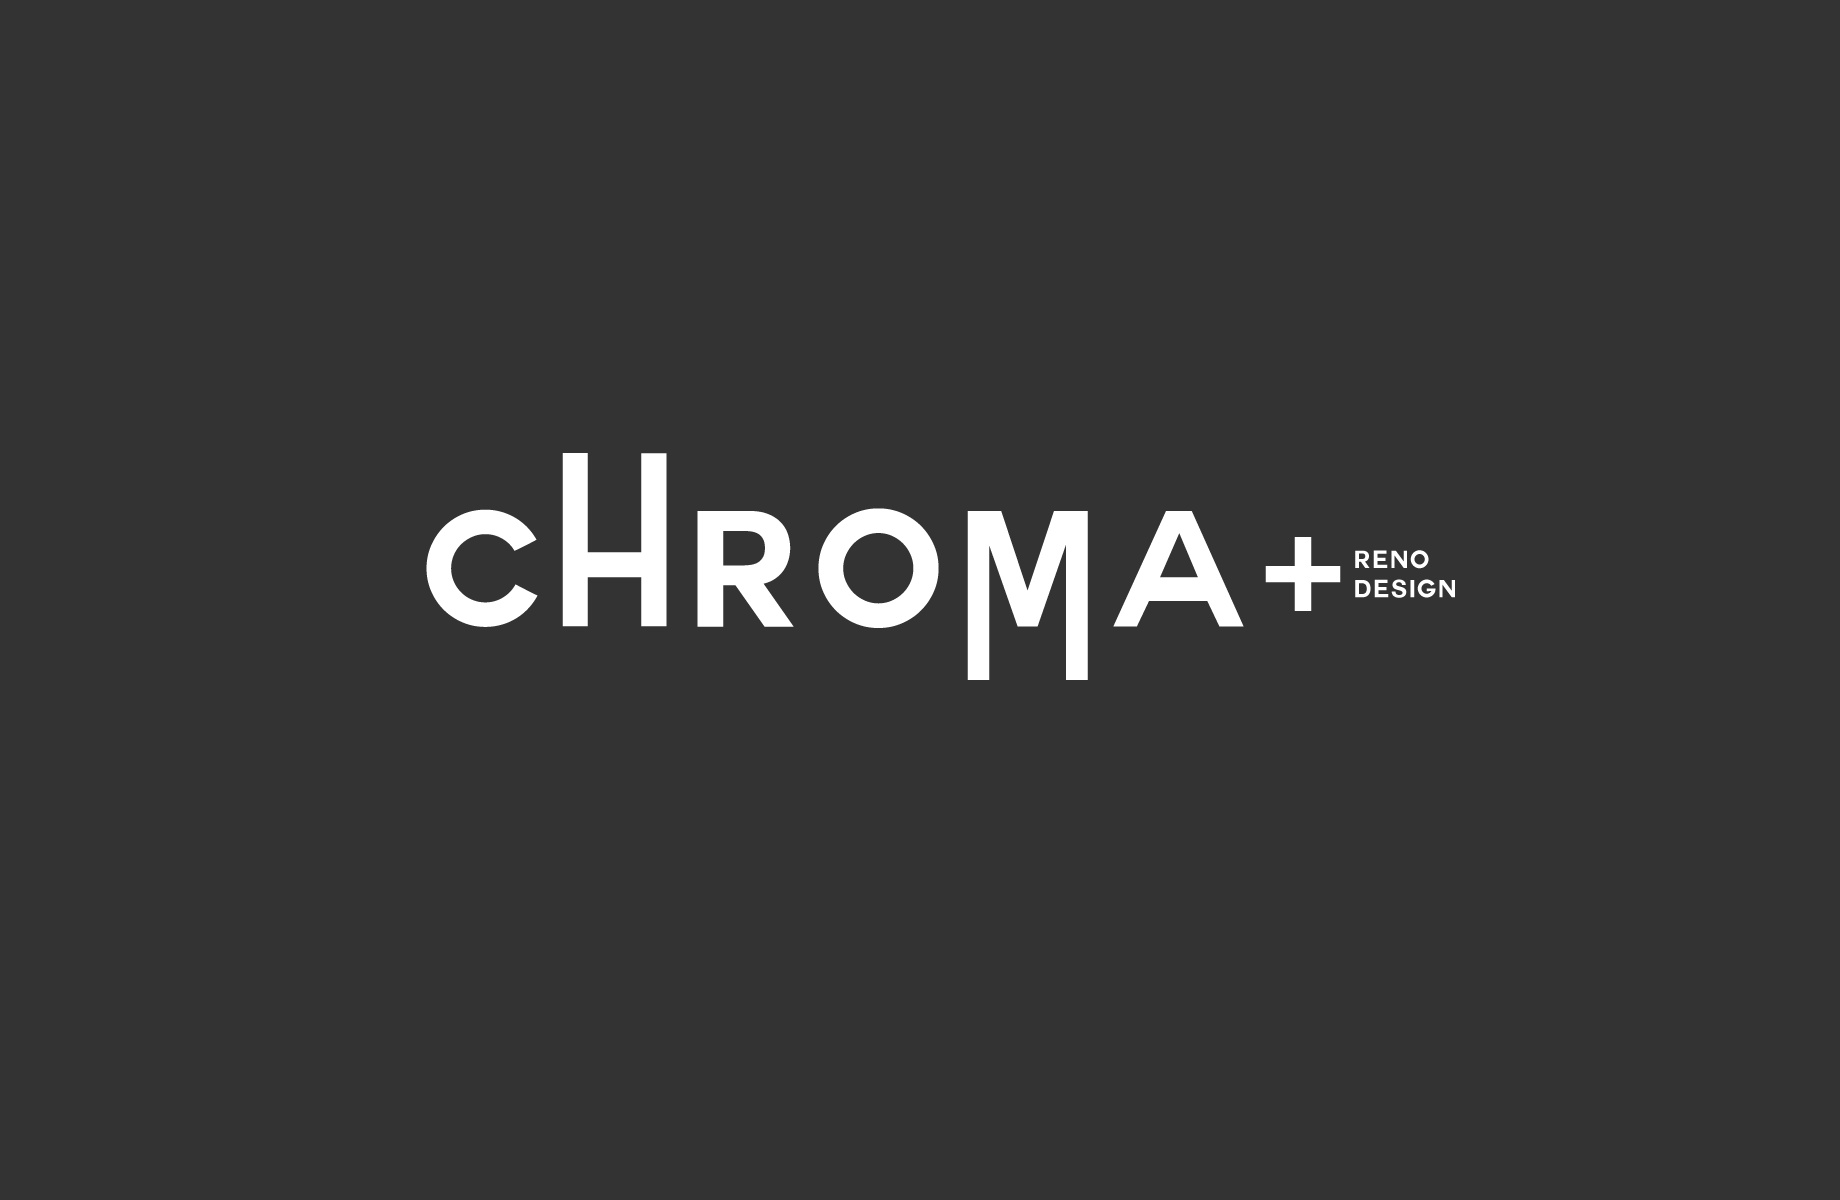 Logo Design by Jan Chua - Entry No. 300 in the Logo Design Contest Inspiring Logo Design for Chroma Reno+Design.